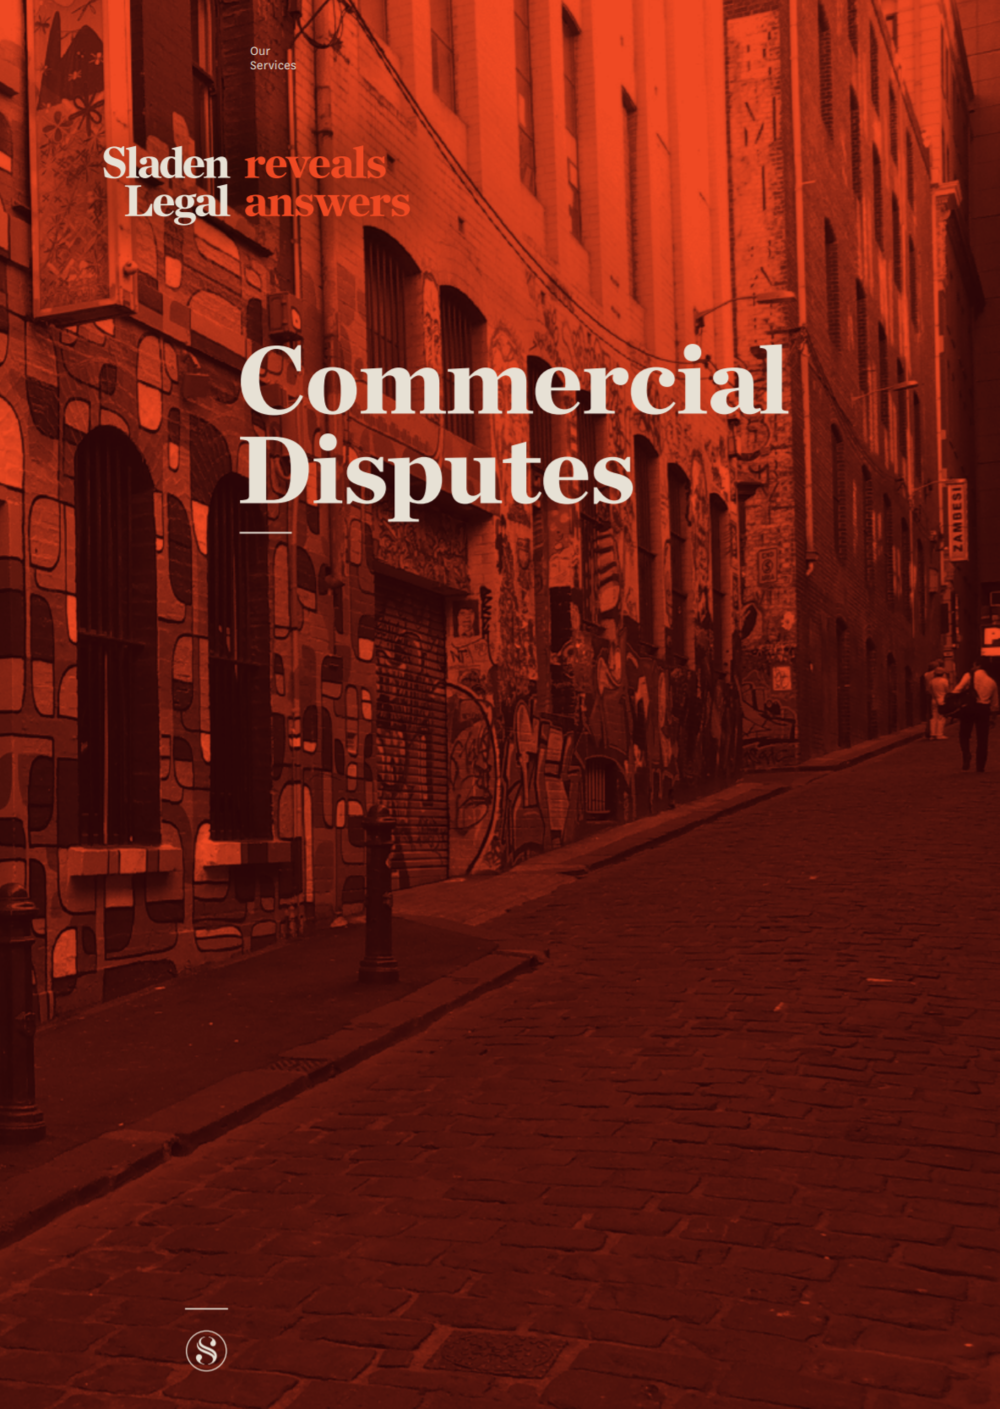 For more information download a copy of our Commercial Disputes Brochure -